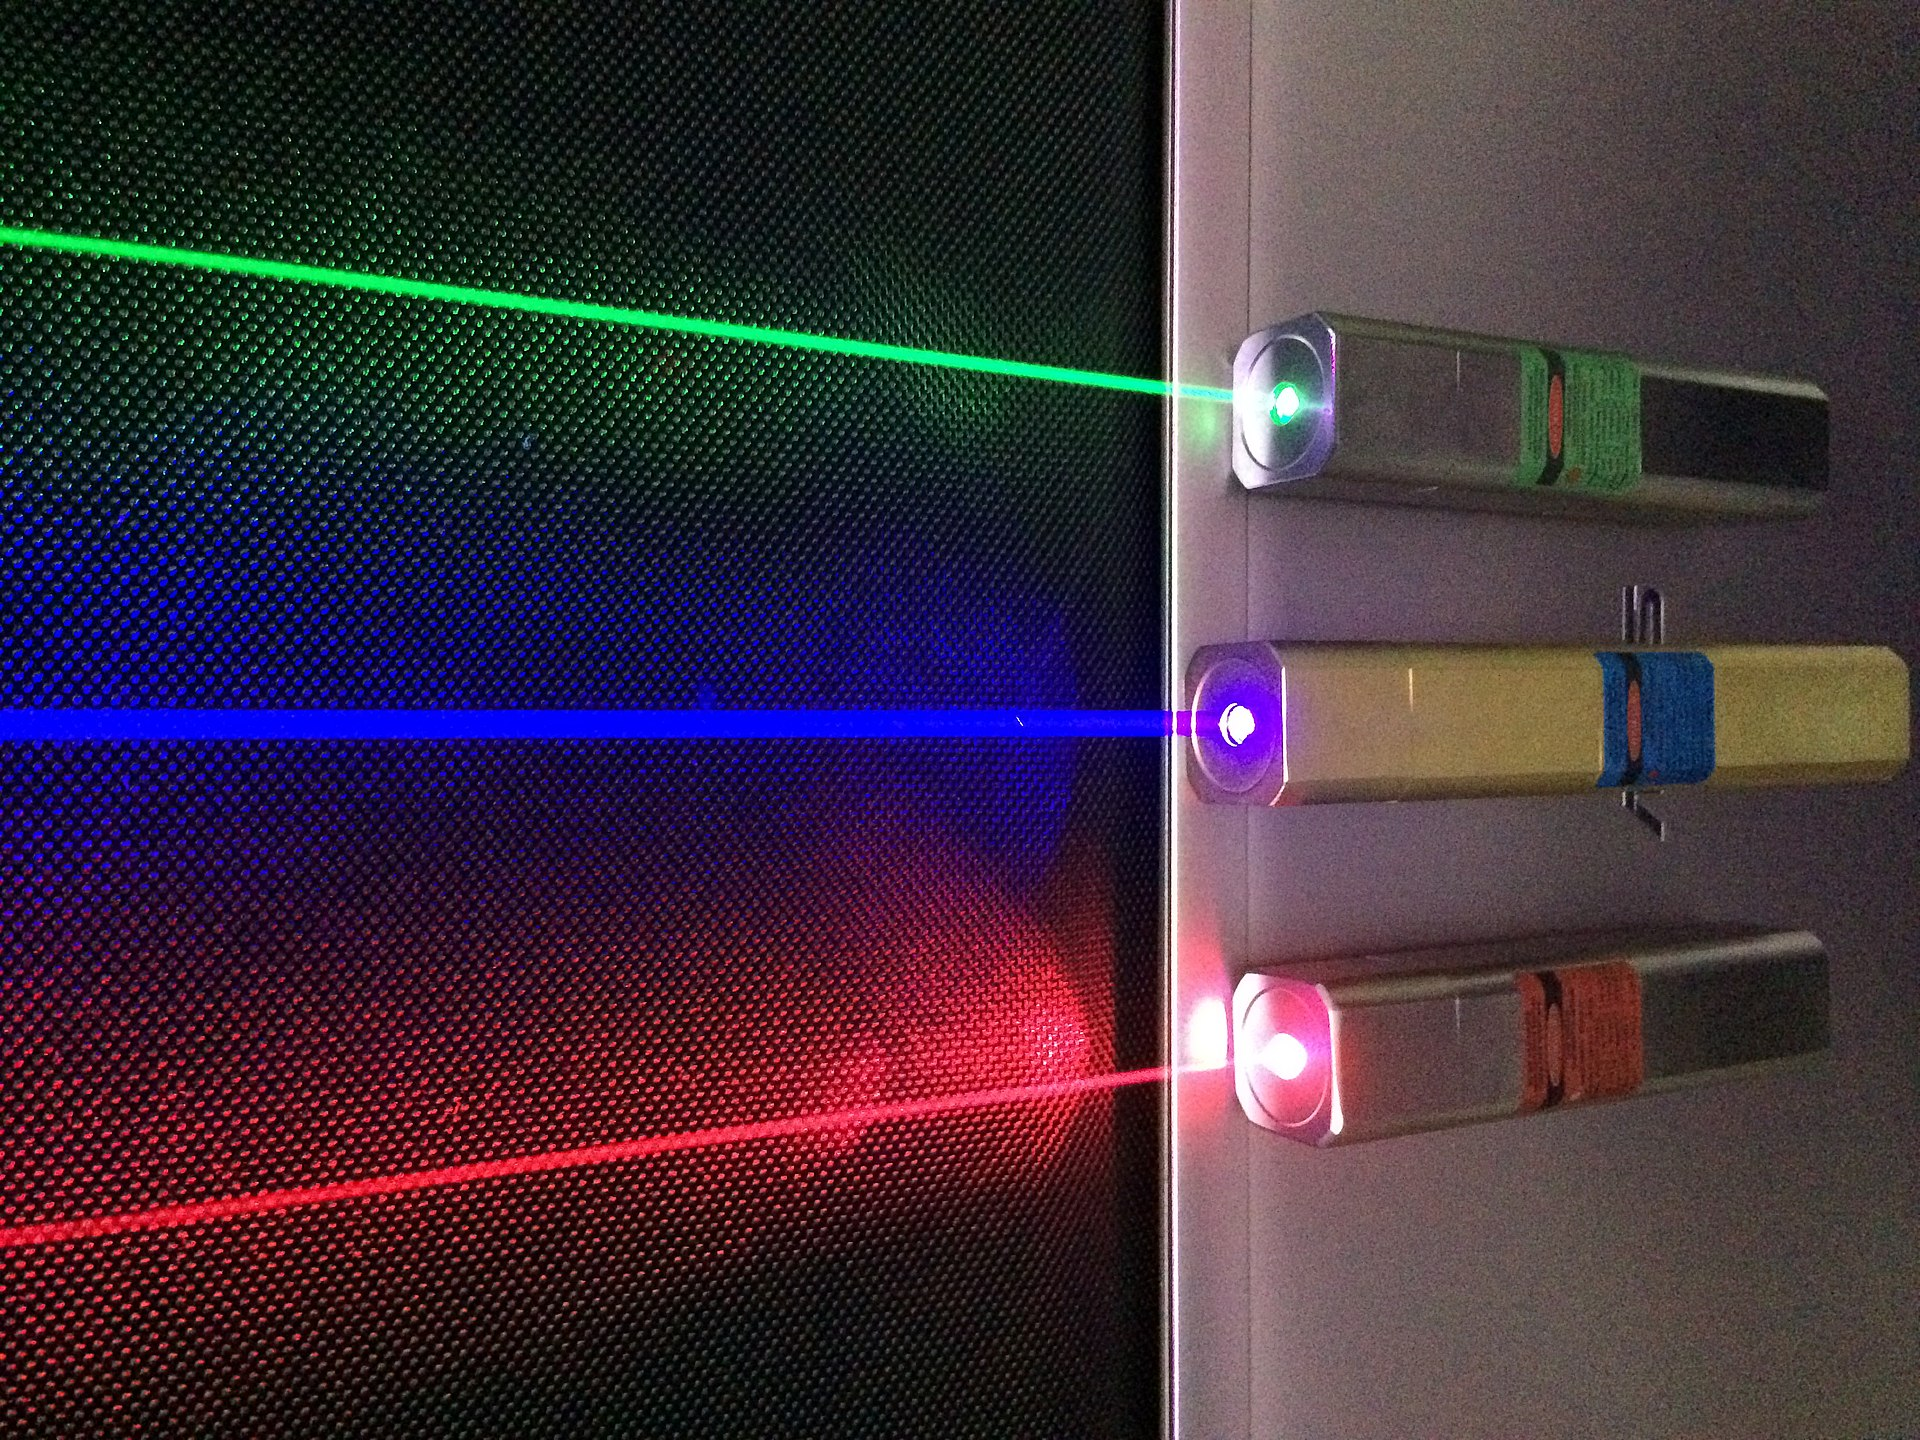 Laser Pointer  Wikipedia. Child Custody Lawyers In Columbus Ohio. How Much Can I Contribute To Sep Ira. Egyptian Channels Online What Do Nurses Study. Personal Loan Home Improvement. Car Dealers In Middletown Ny. Philadelphia Moving Company Hotel Nwe York. Special Ed College Programs Gta 5 Car List. Musical Fulfillment Services